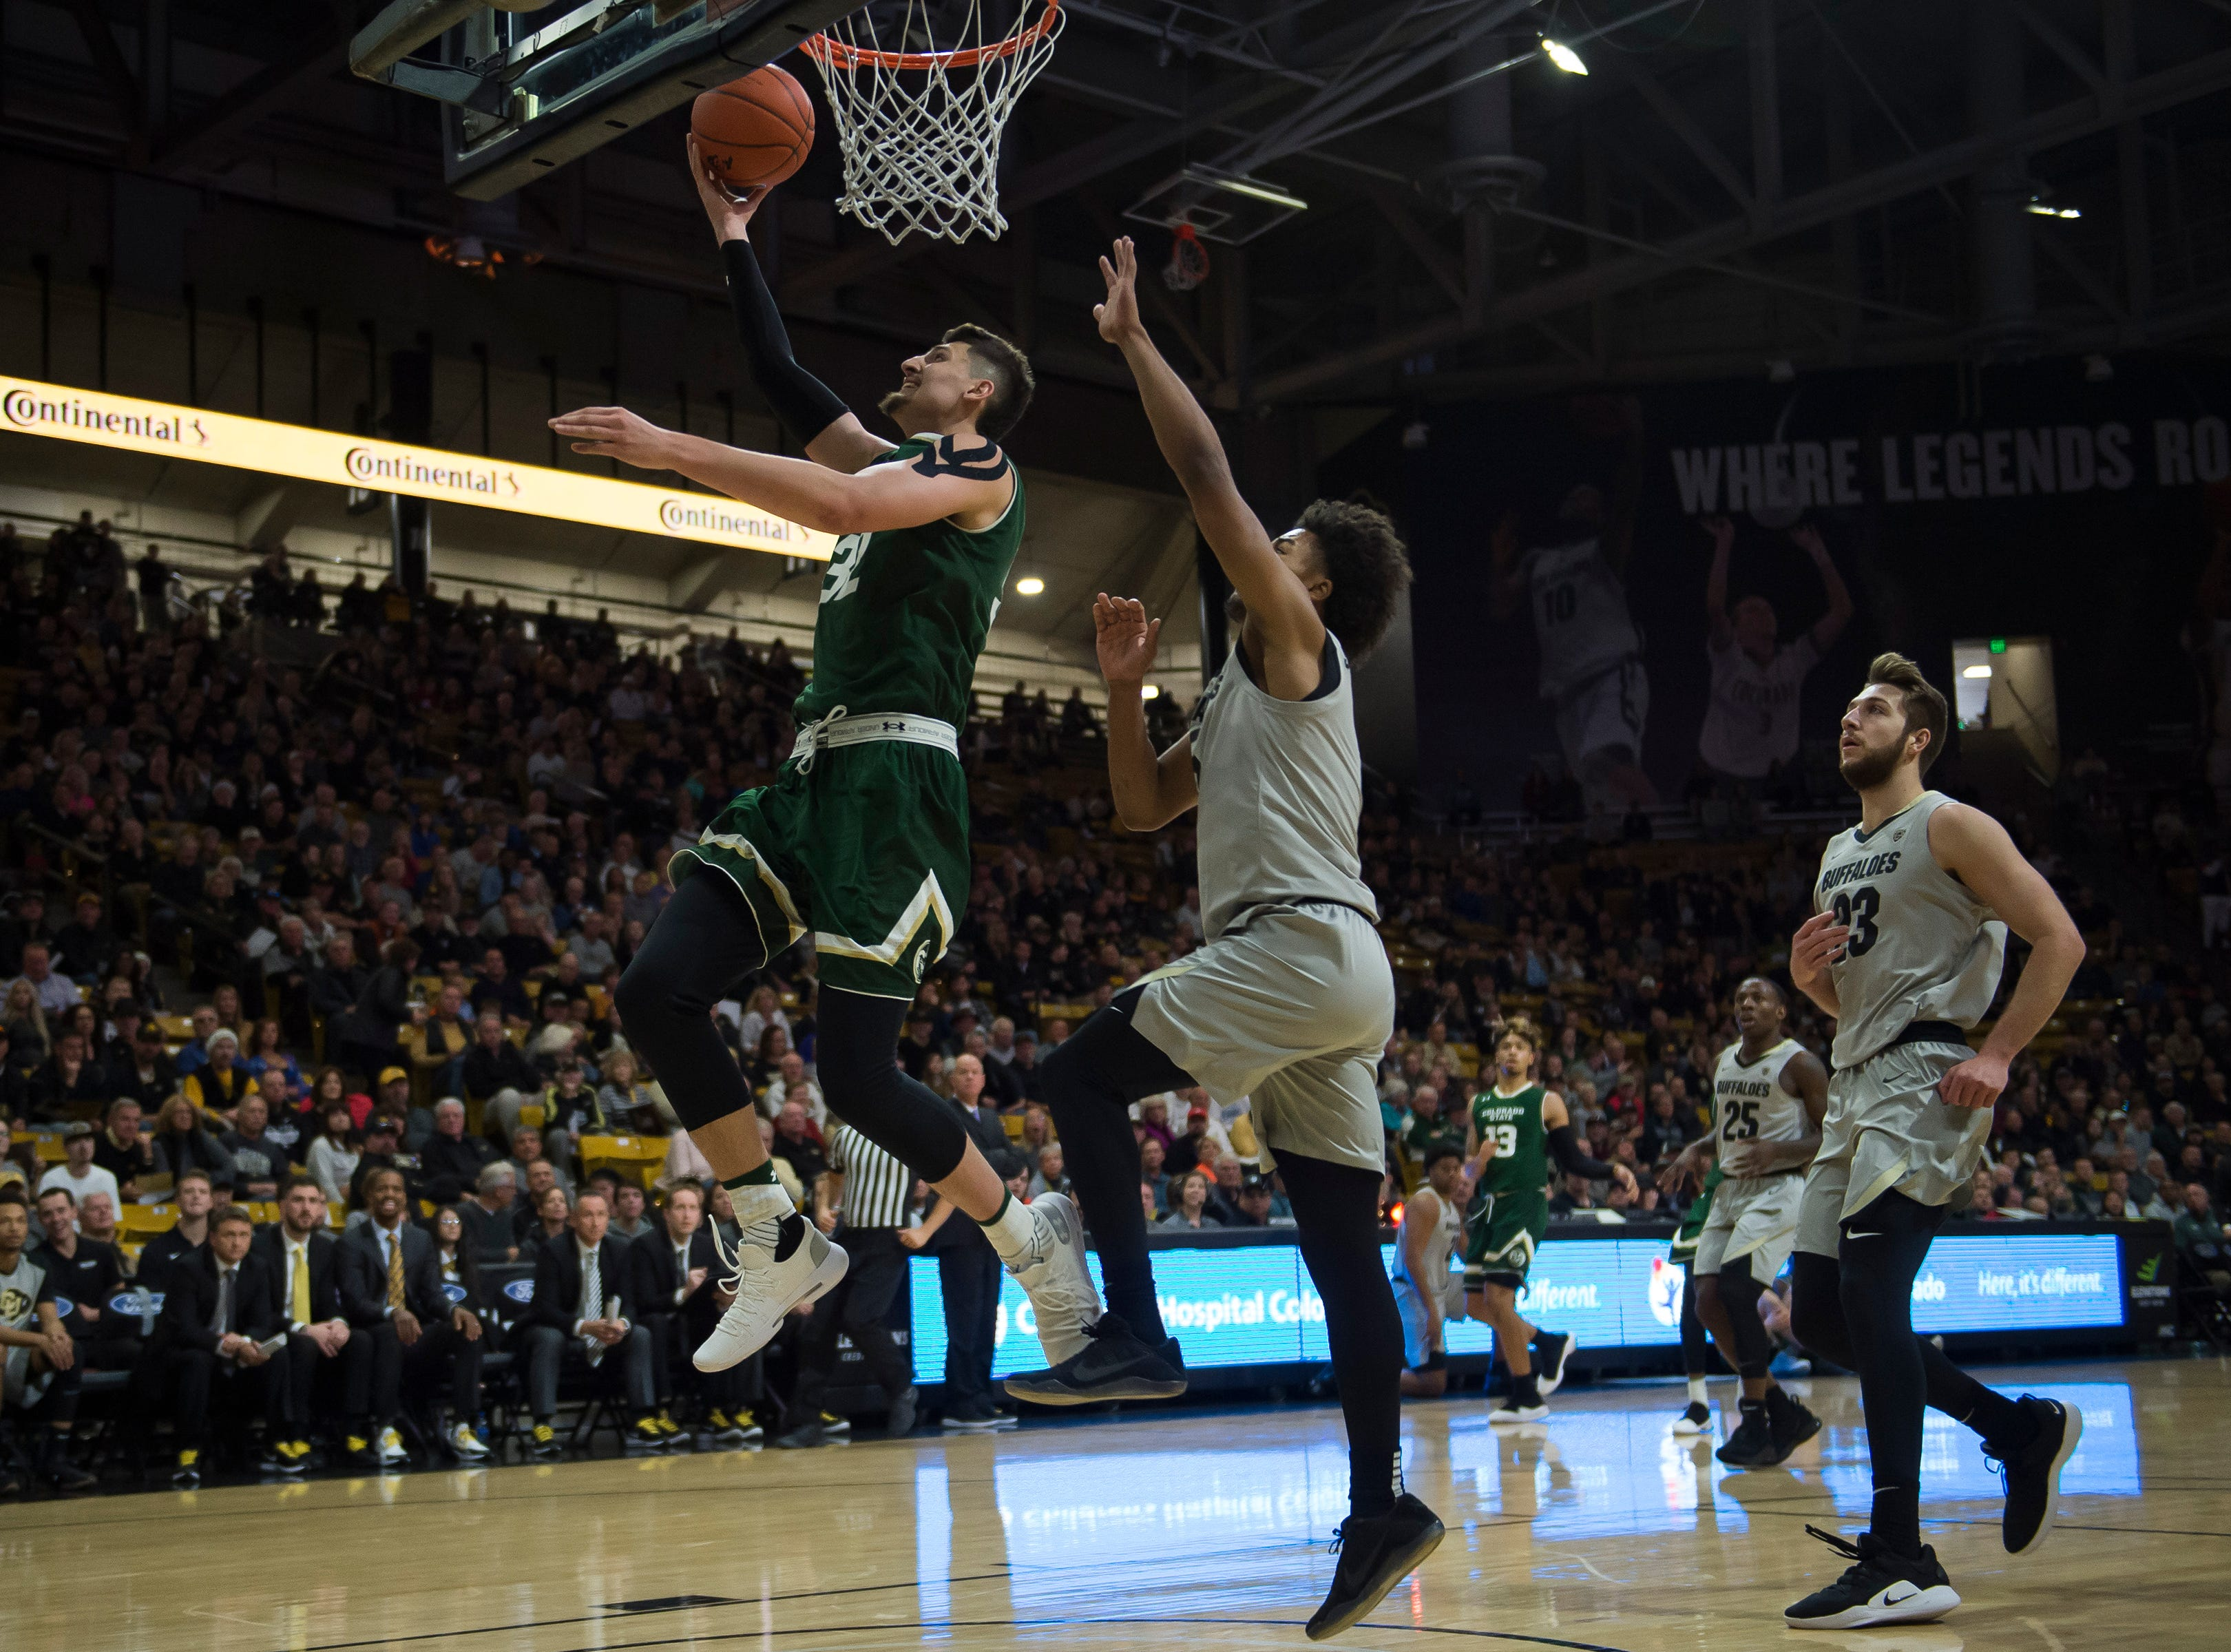 Colorado State University junior center Nico Carvacho (32) goes for a layup past University of Colorado sophomore guard D'Shawn Schwartz (5) on Saturday, Dec. 1, 2018, at the CU Event Center in Boulder, Colo.